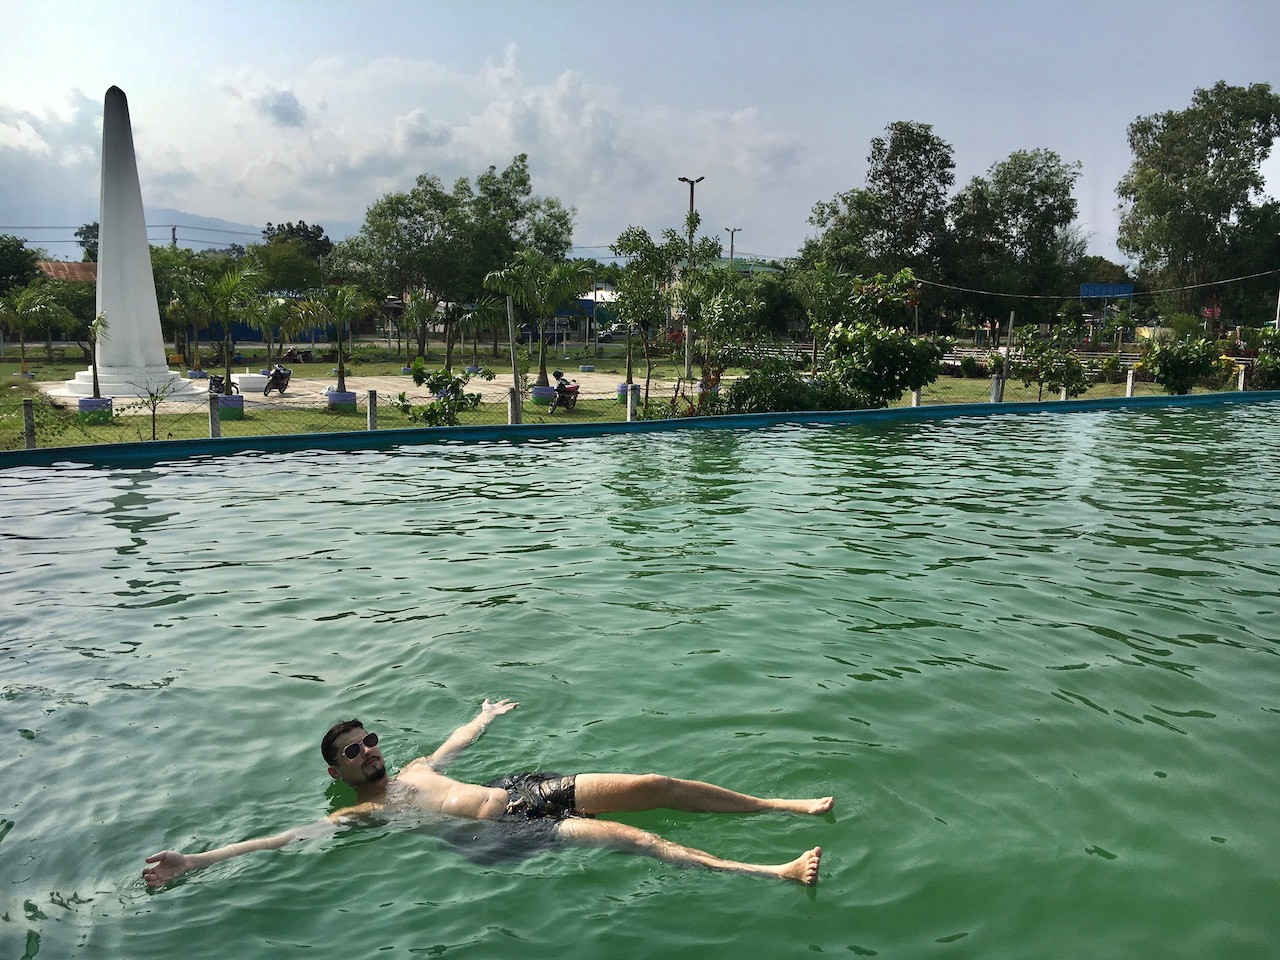 Enjoying the public pool at Sein Lae Tharyar Park will set you back 200 kyats.